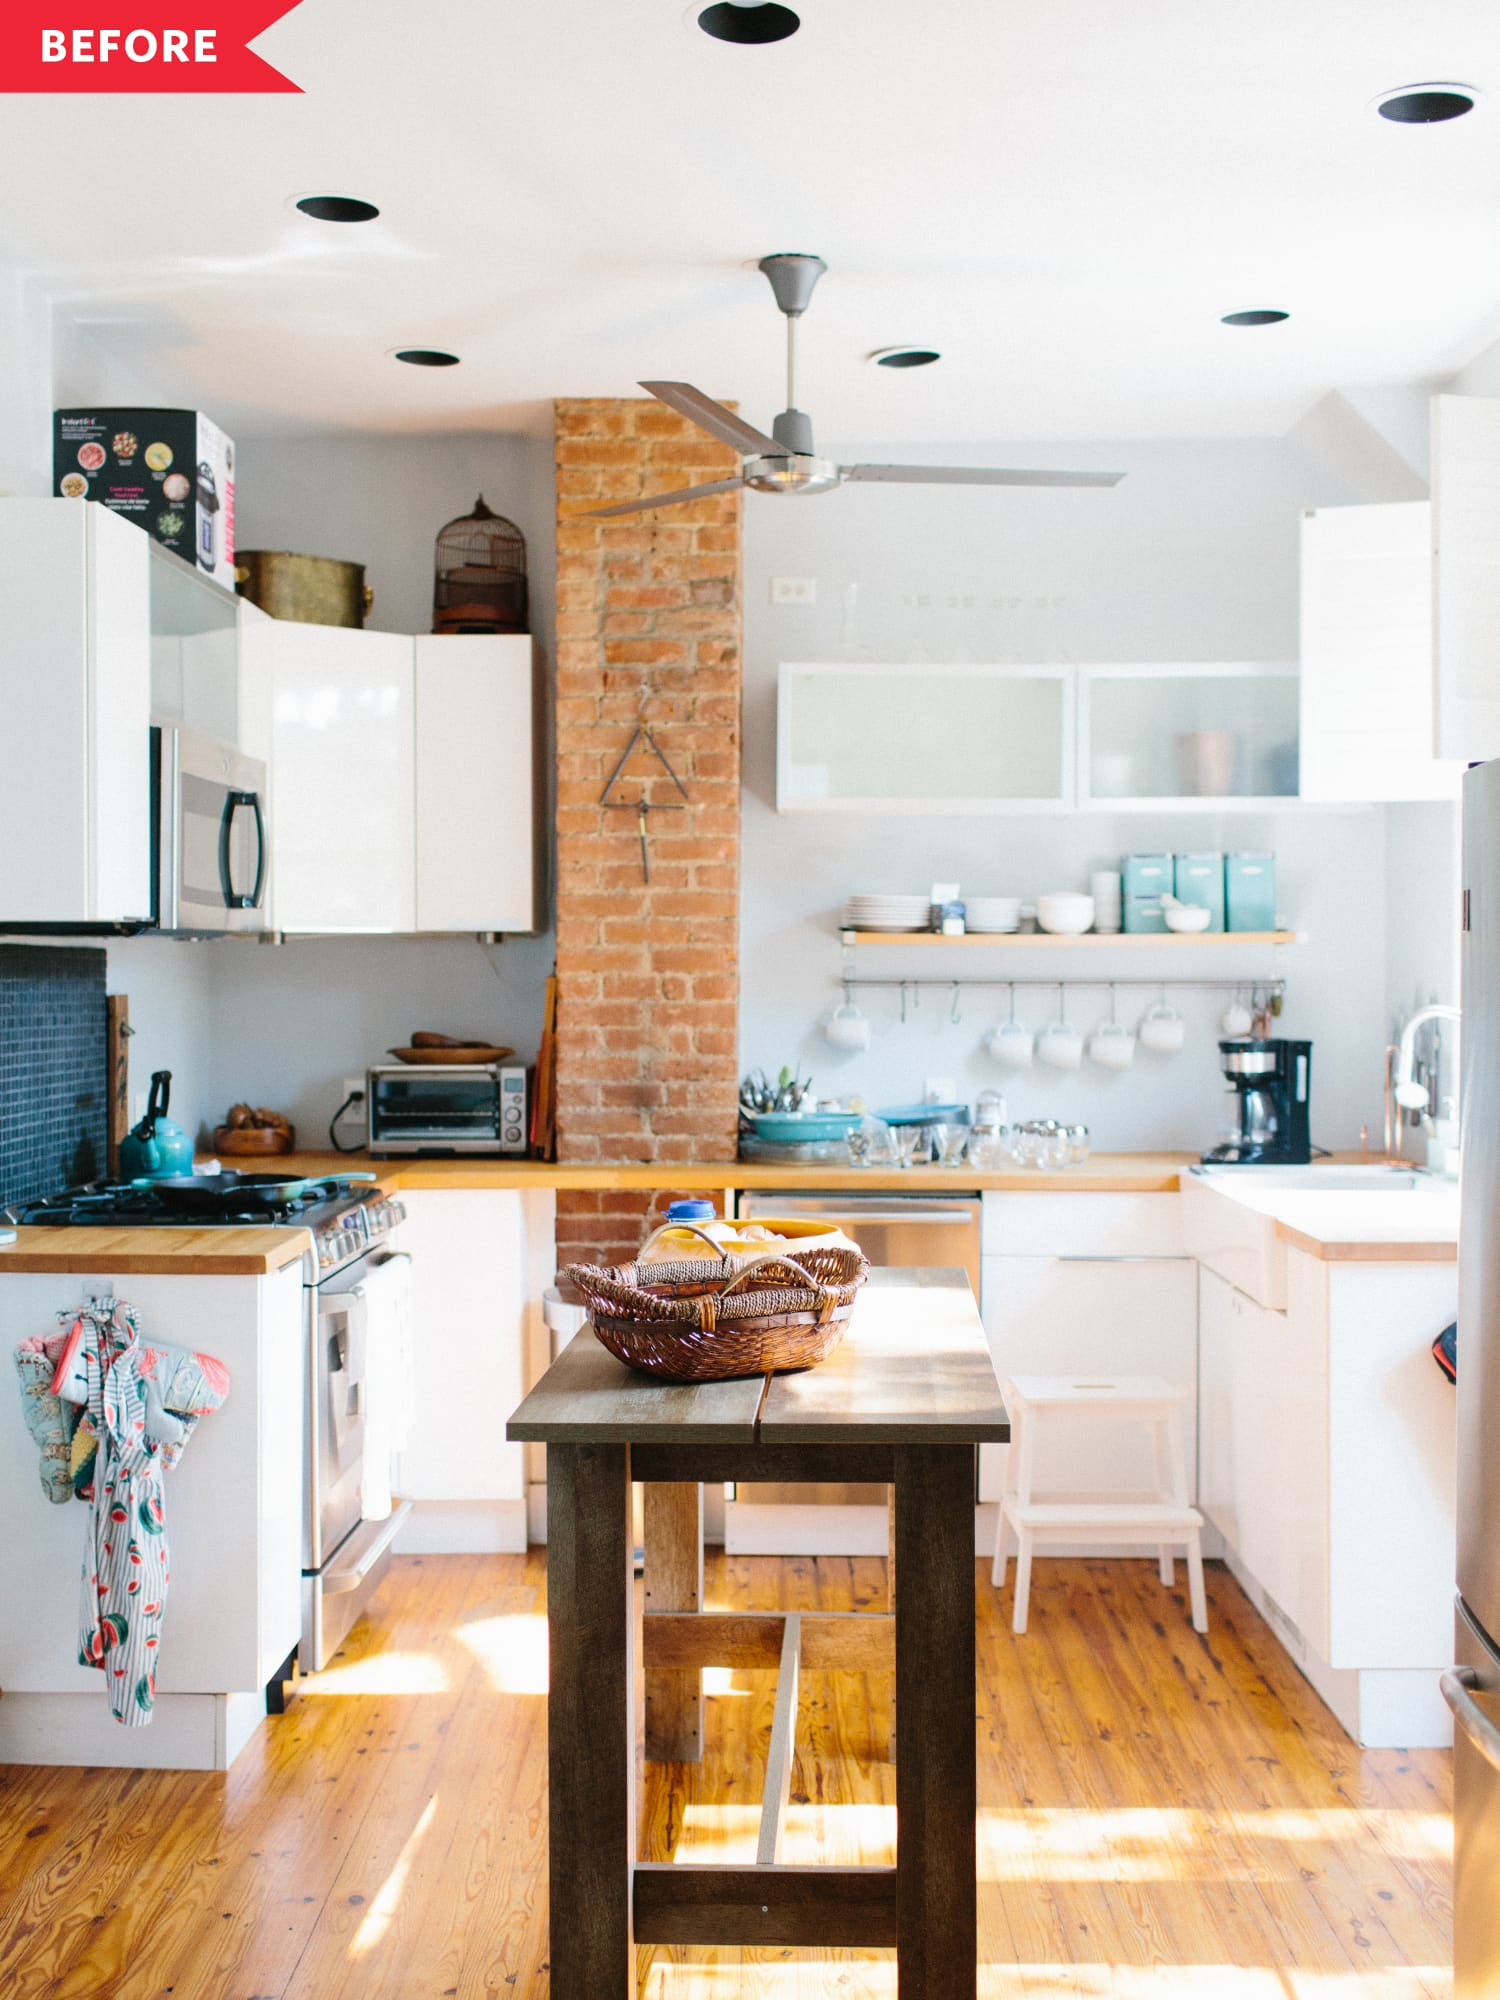 Before & After: This Already Charming 124-Year-Old House Just Got Better—Thanks to the Power of Color